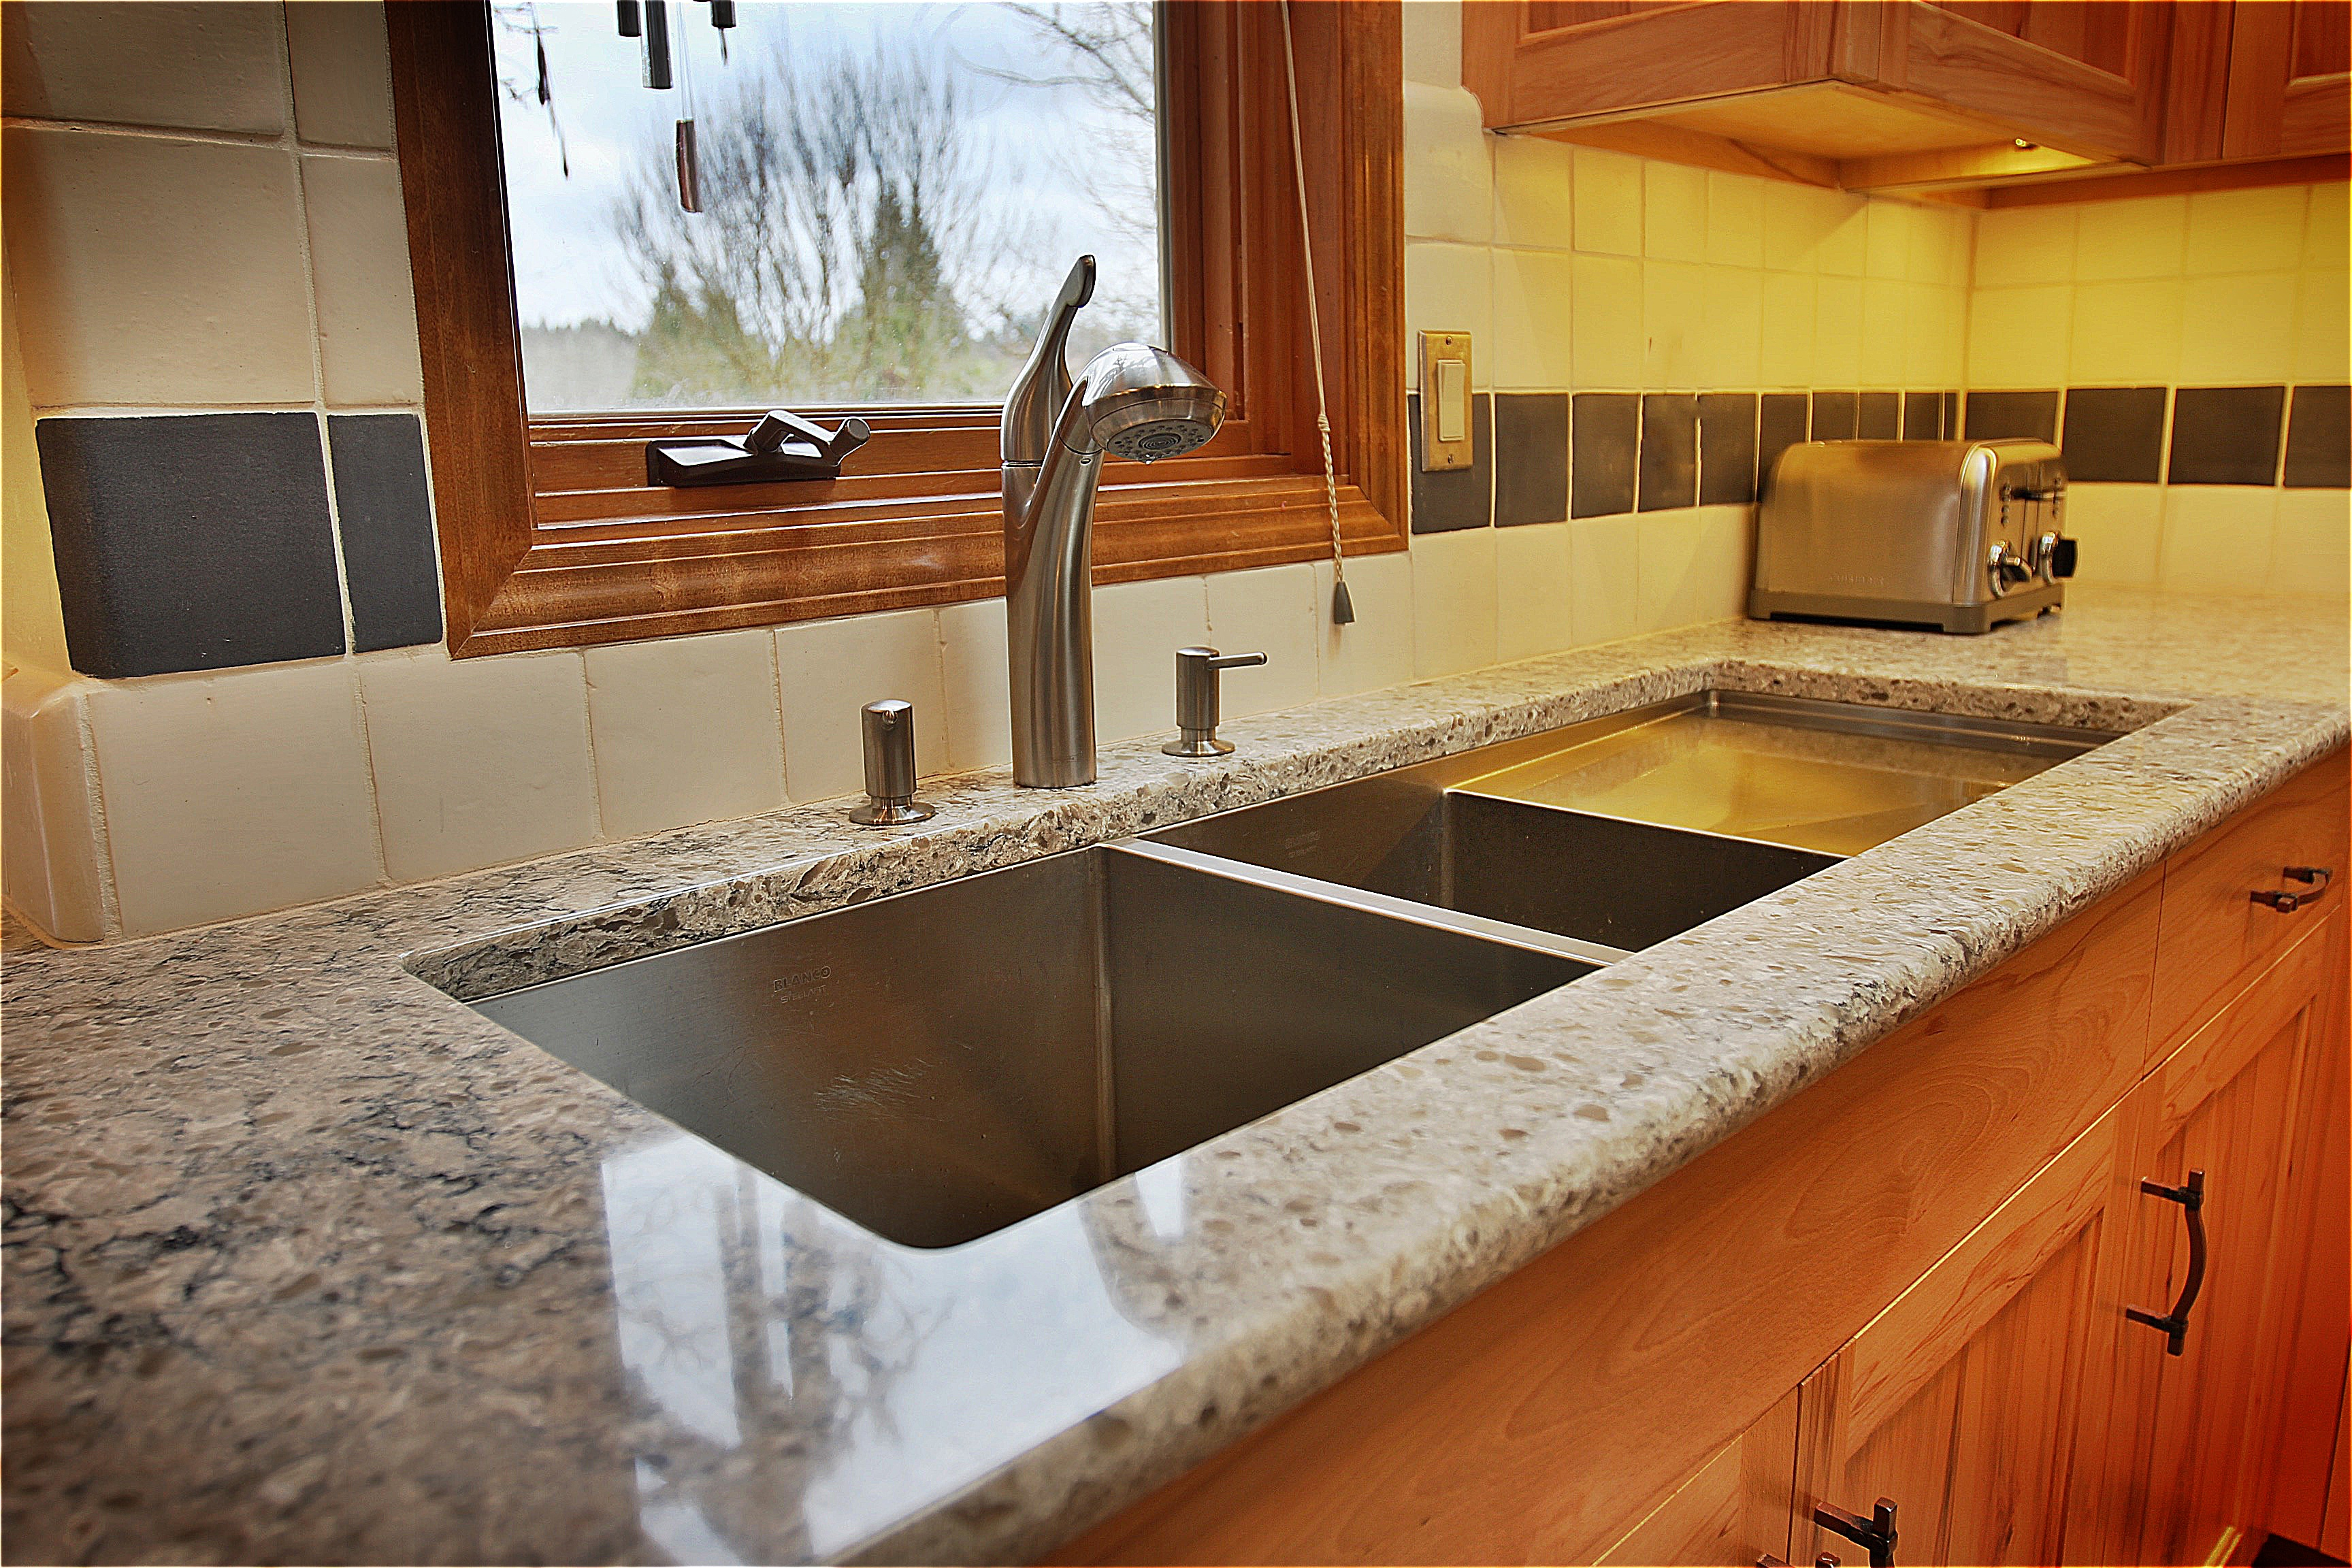 fitters granite top files countertop cabinets average installed pic and of worktop the cost for styles inspiring dishwasher install countertops to best plumber solid price concept kitchen